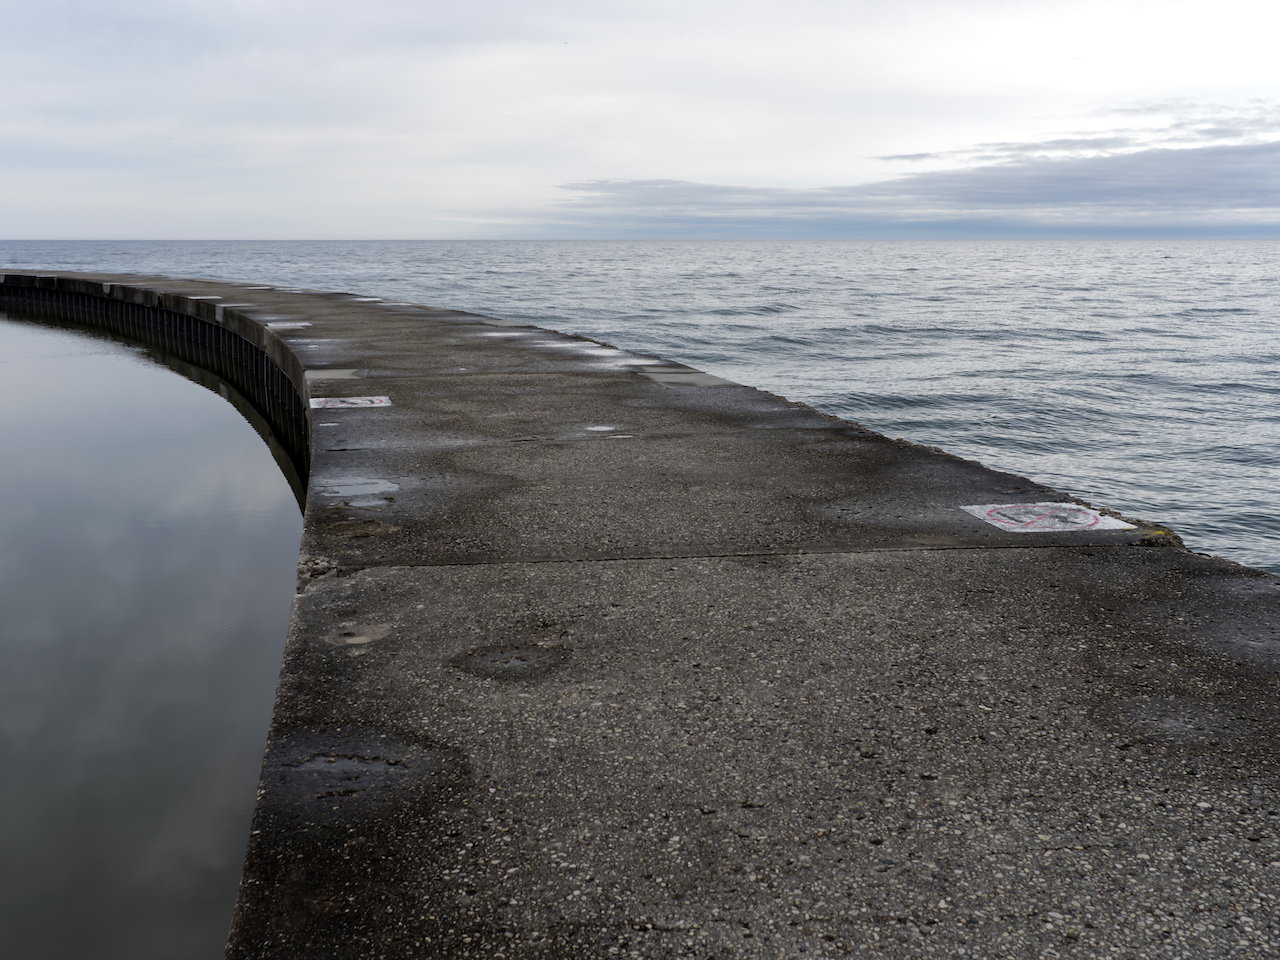 a scorpion tail of concrete curves to the left into Lake Michigan with a muted sky, from The Shore series by Lincoln Schatz